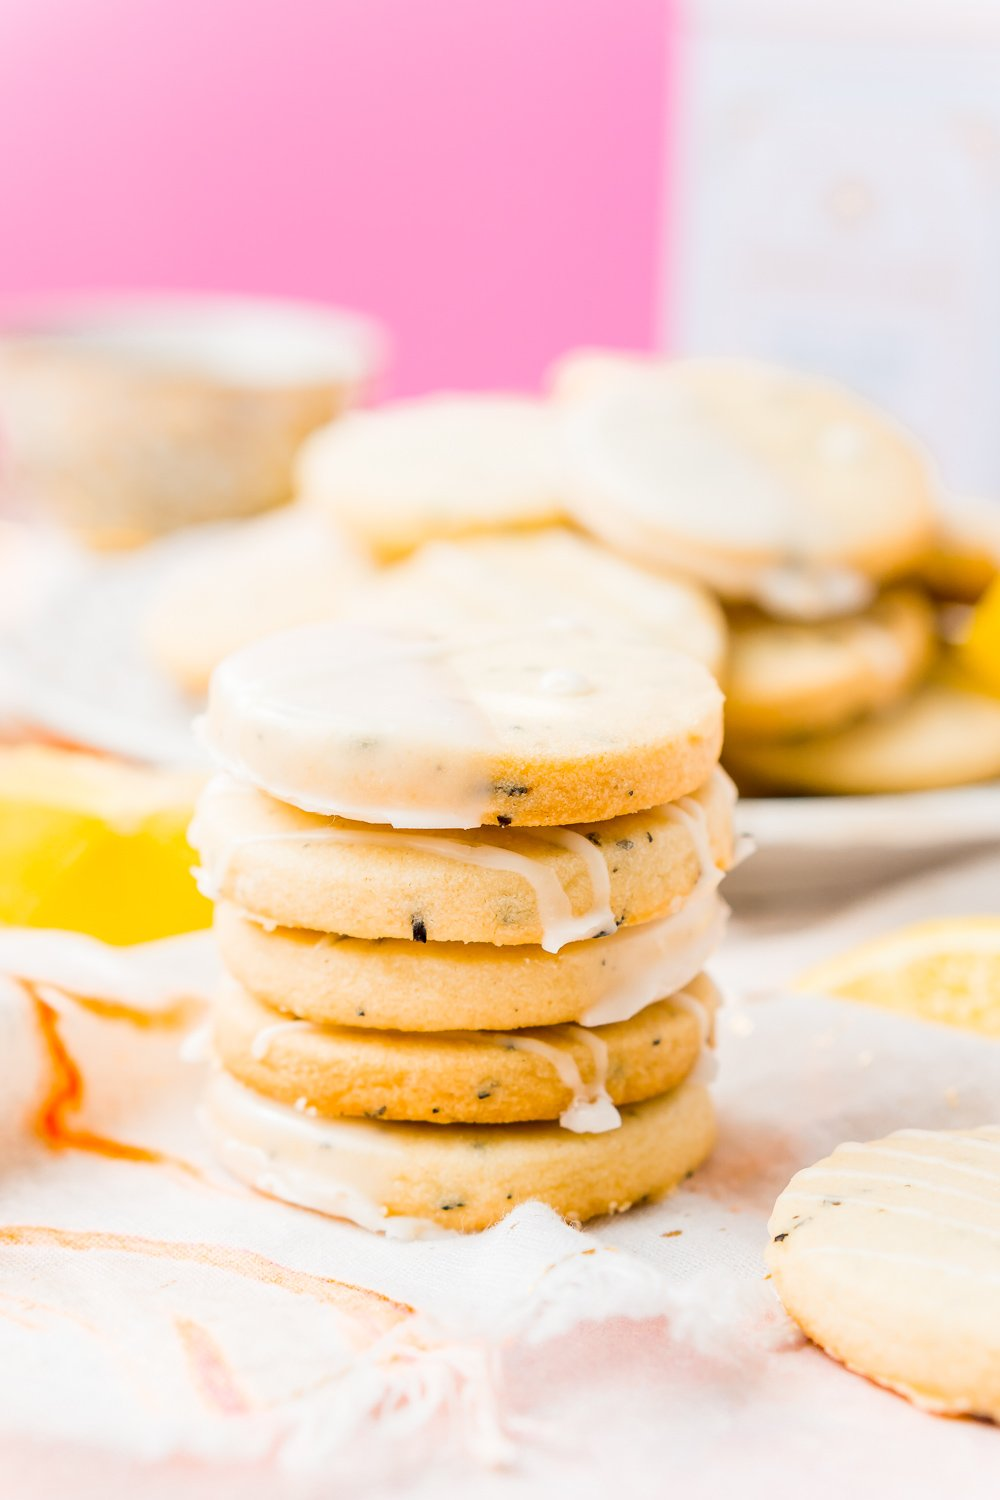 Stack of five Earl Grey Cookies with lemon icing with plate of cookies in the background.